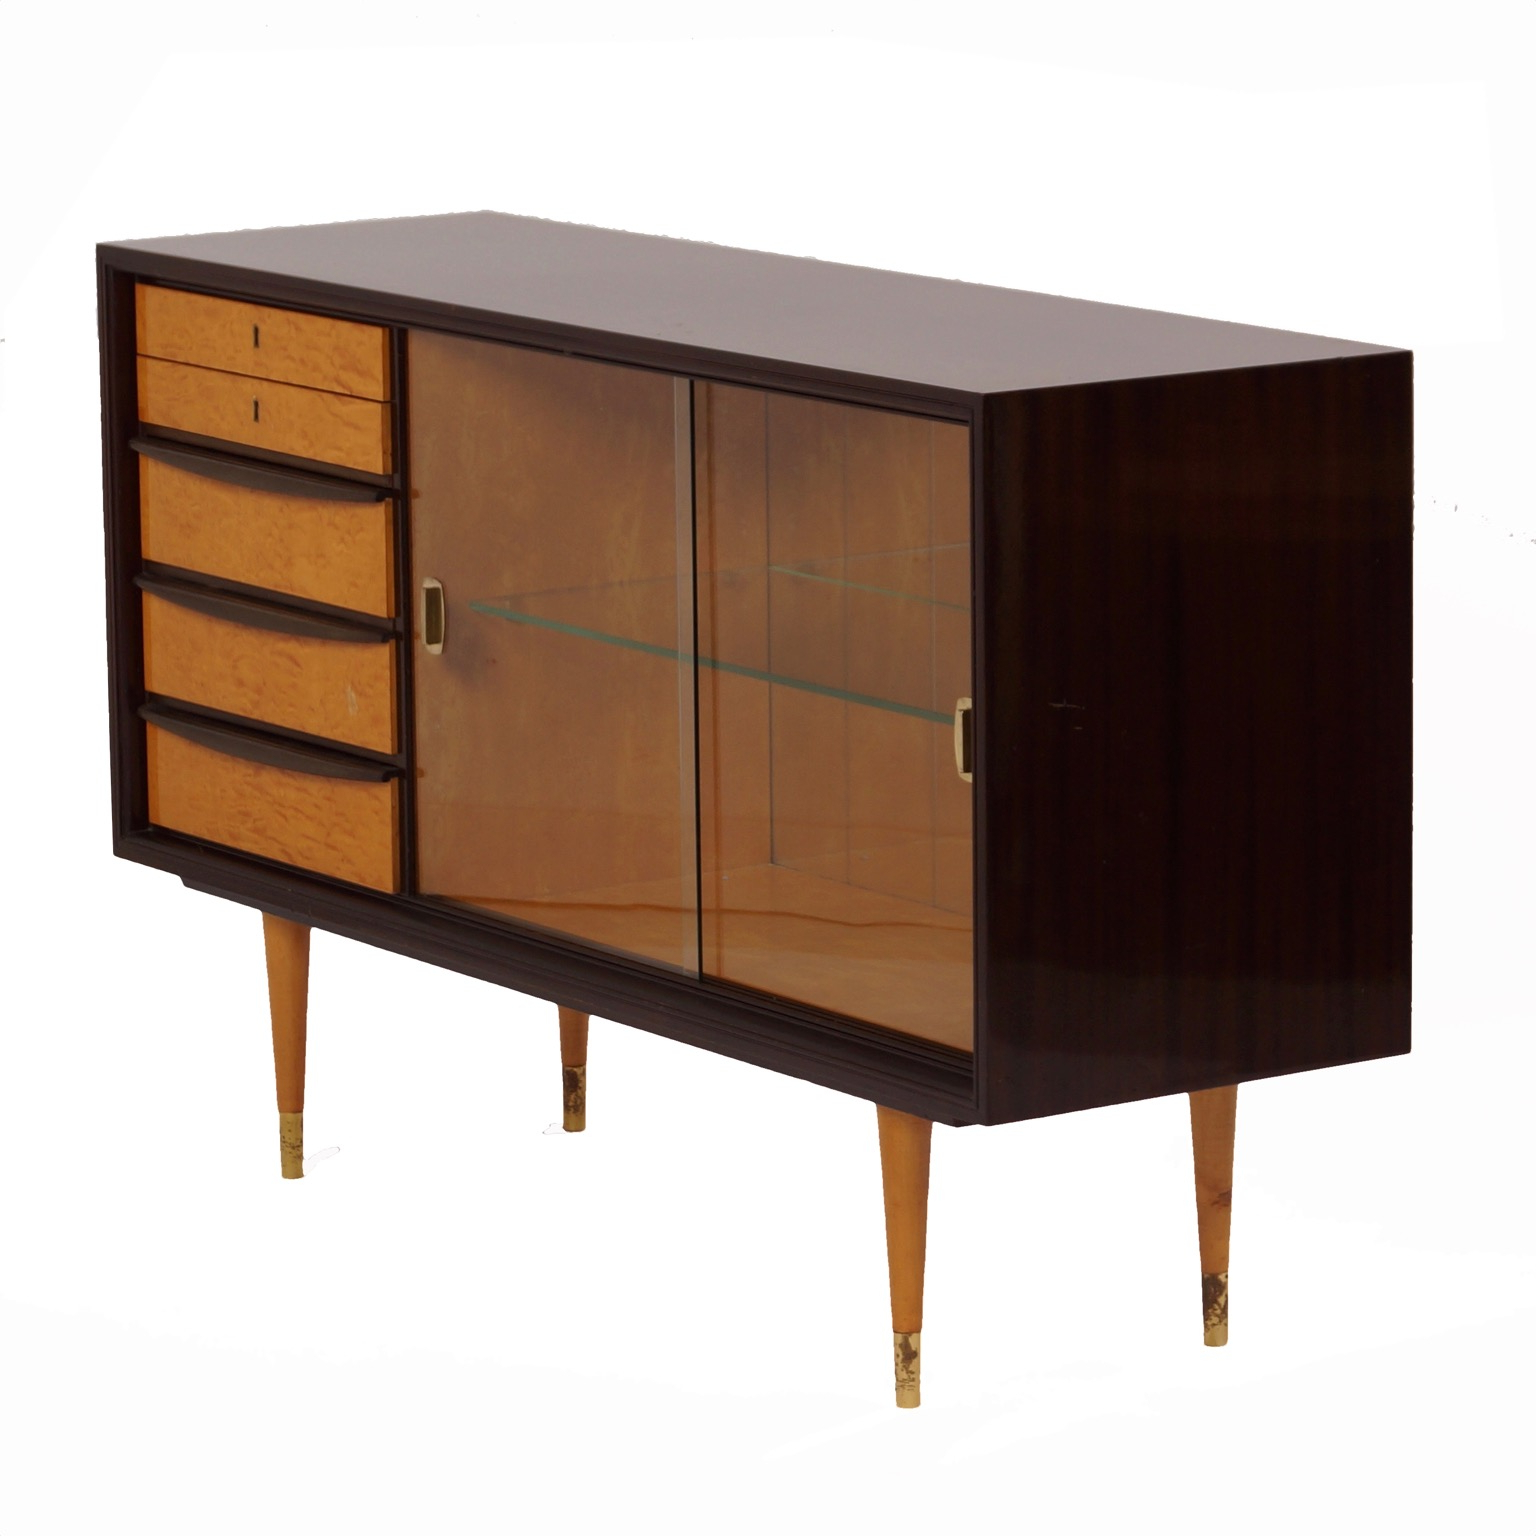 Aged Brass Sideboards Throughout 2019 Mahogany Sideboard With Showcase And Brass Details, 1960S – Vintage (Gallery 4 of 20)